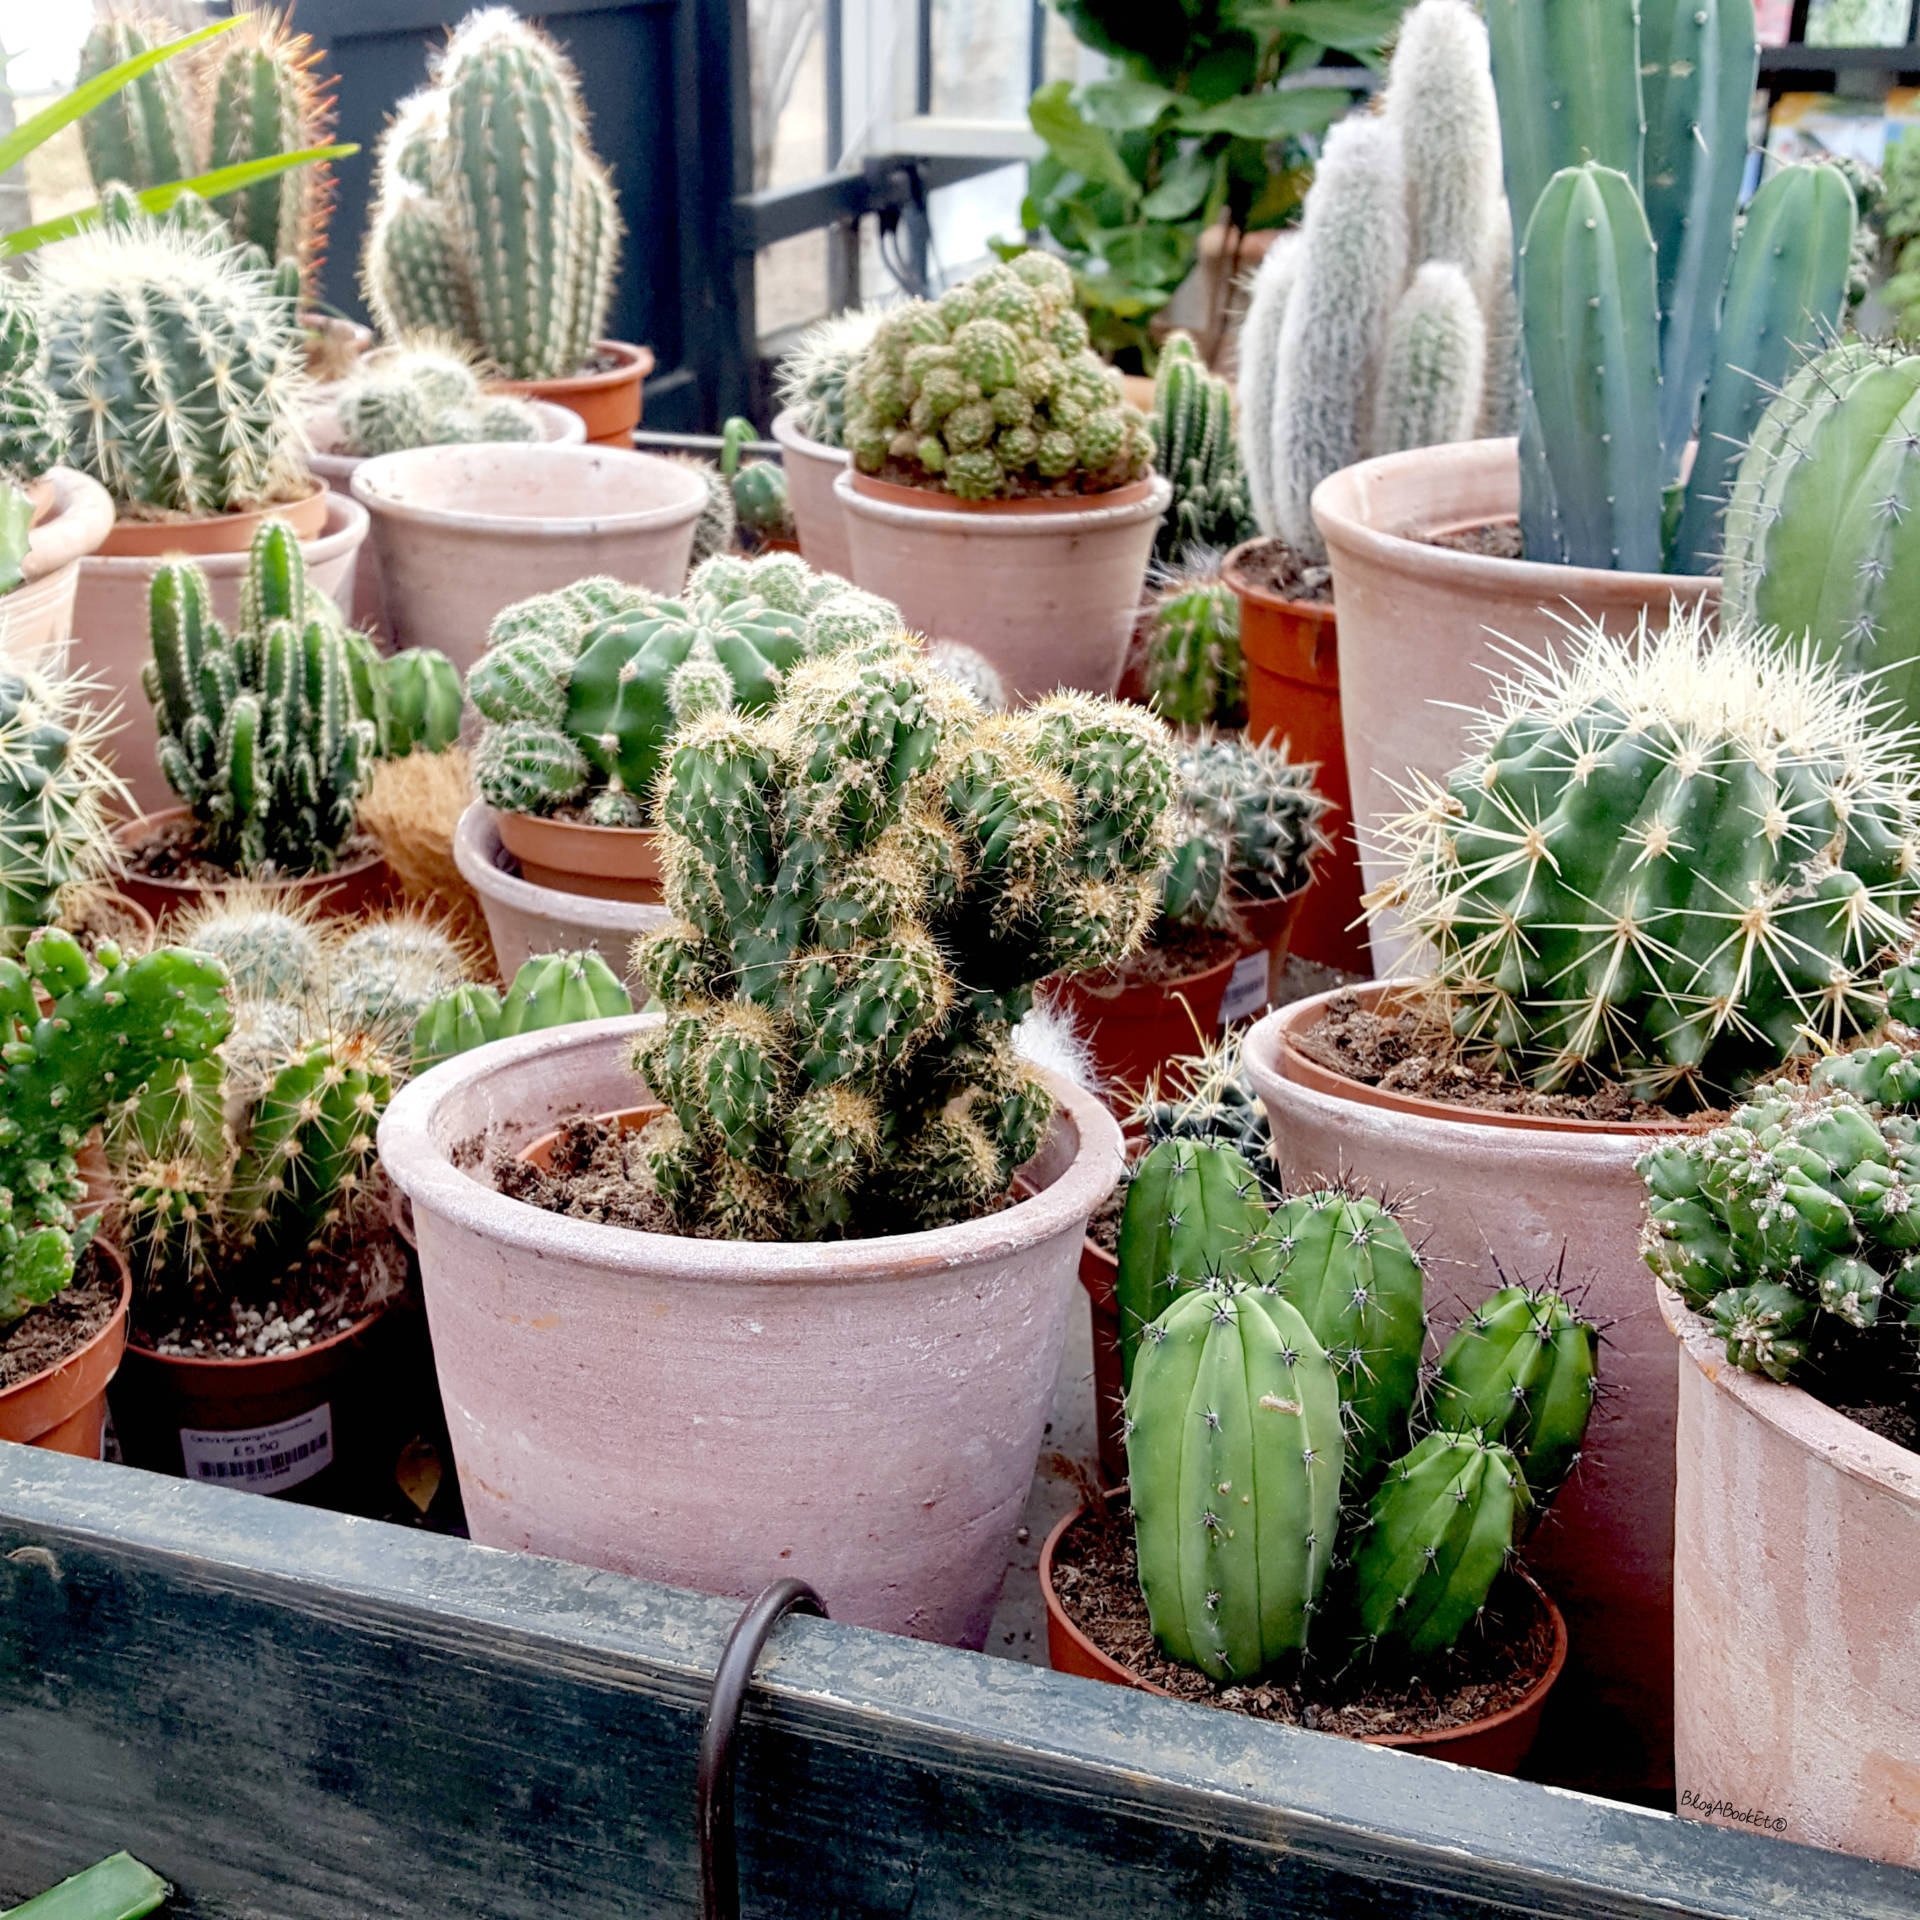 Petersham Nurseries, Petersham, Richmond, London, Surrey, Flowers, Plants, Succulents, Cacti, Cactus, Bedding Plants, Nurseries, Garden, Gardening, Summer, Beautiful, Beauty, Blogger, Life, Lifestyle, Blog A Book Etc, Fay